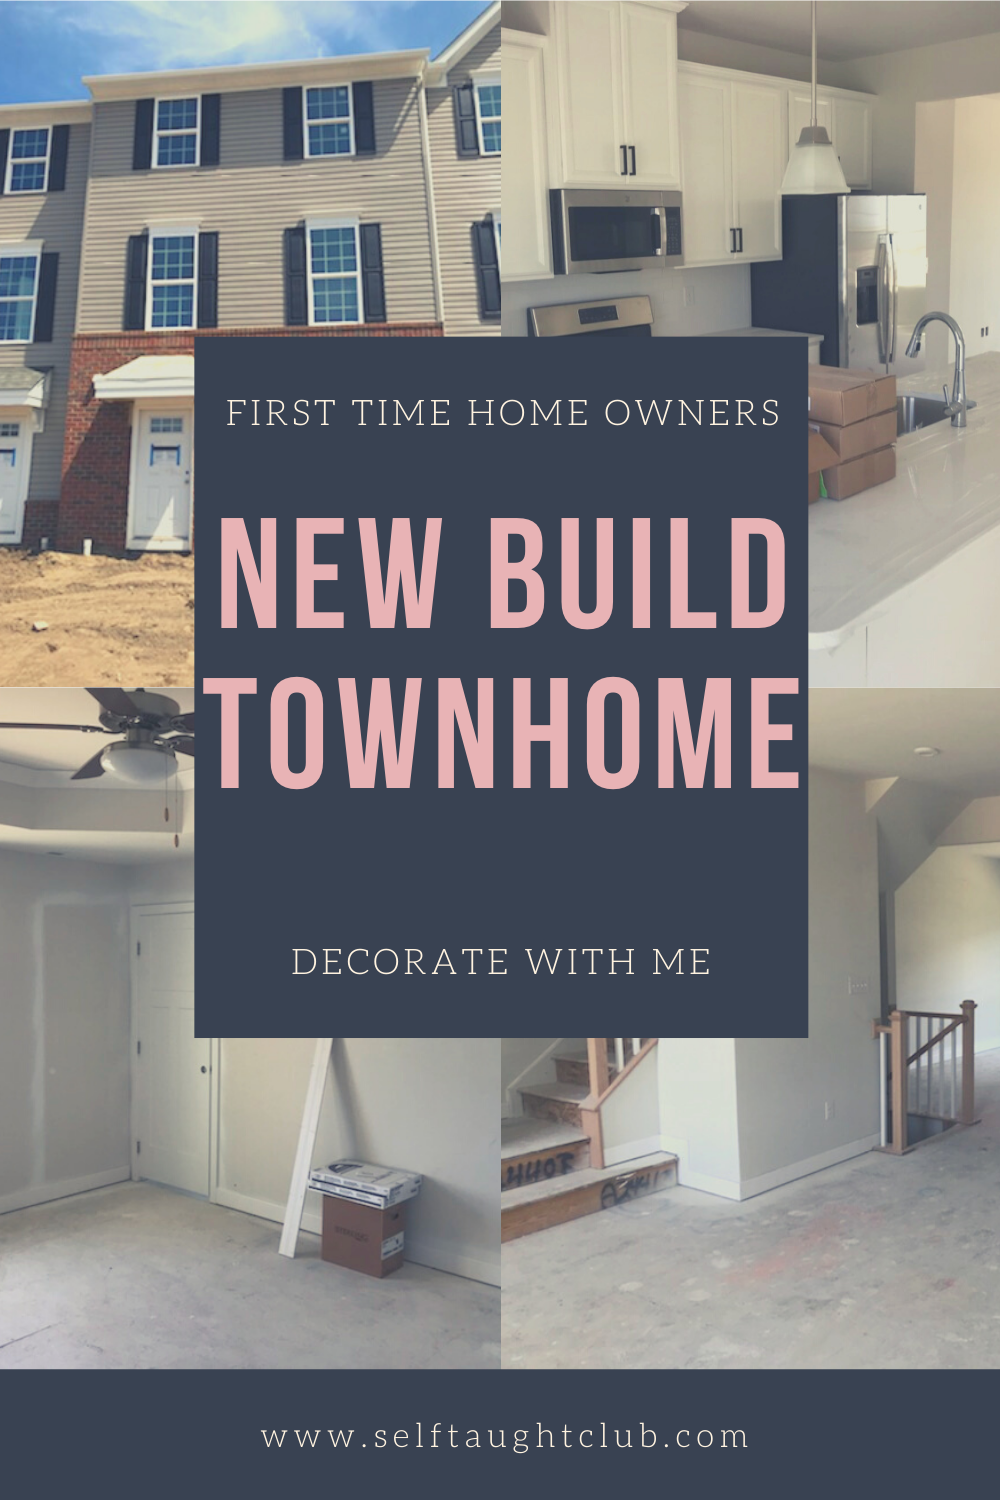 New build townhome. First time home owners. Decorate our townhome with me! #newconstruction #townhome #newbuild #homedecor